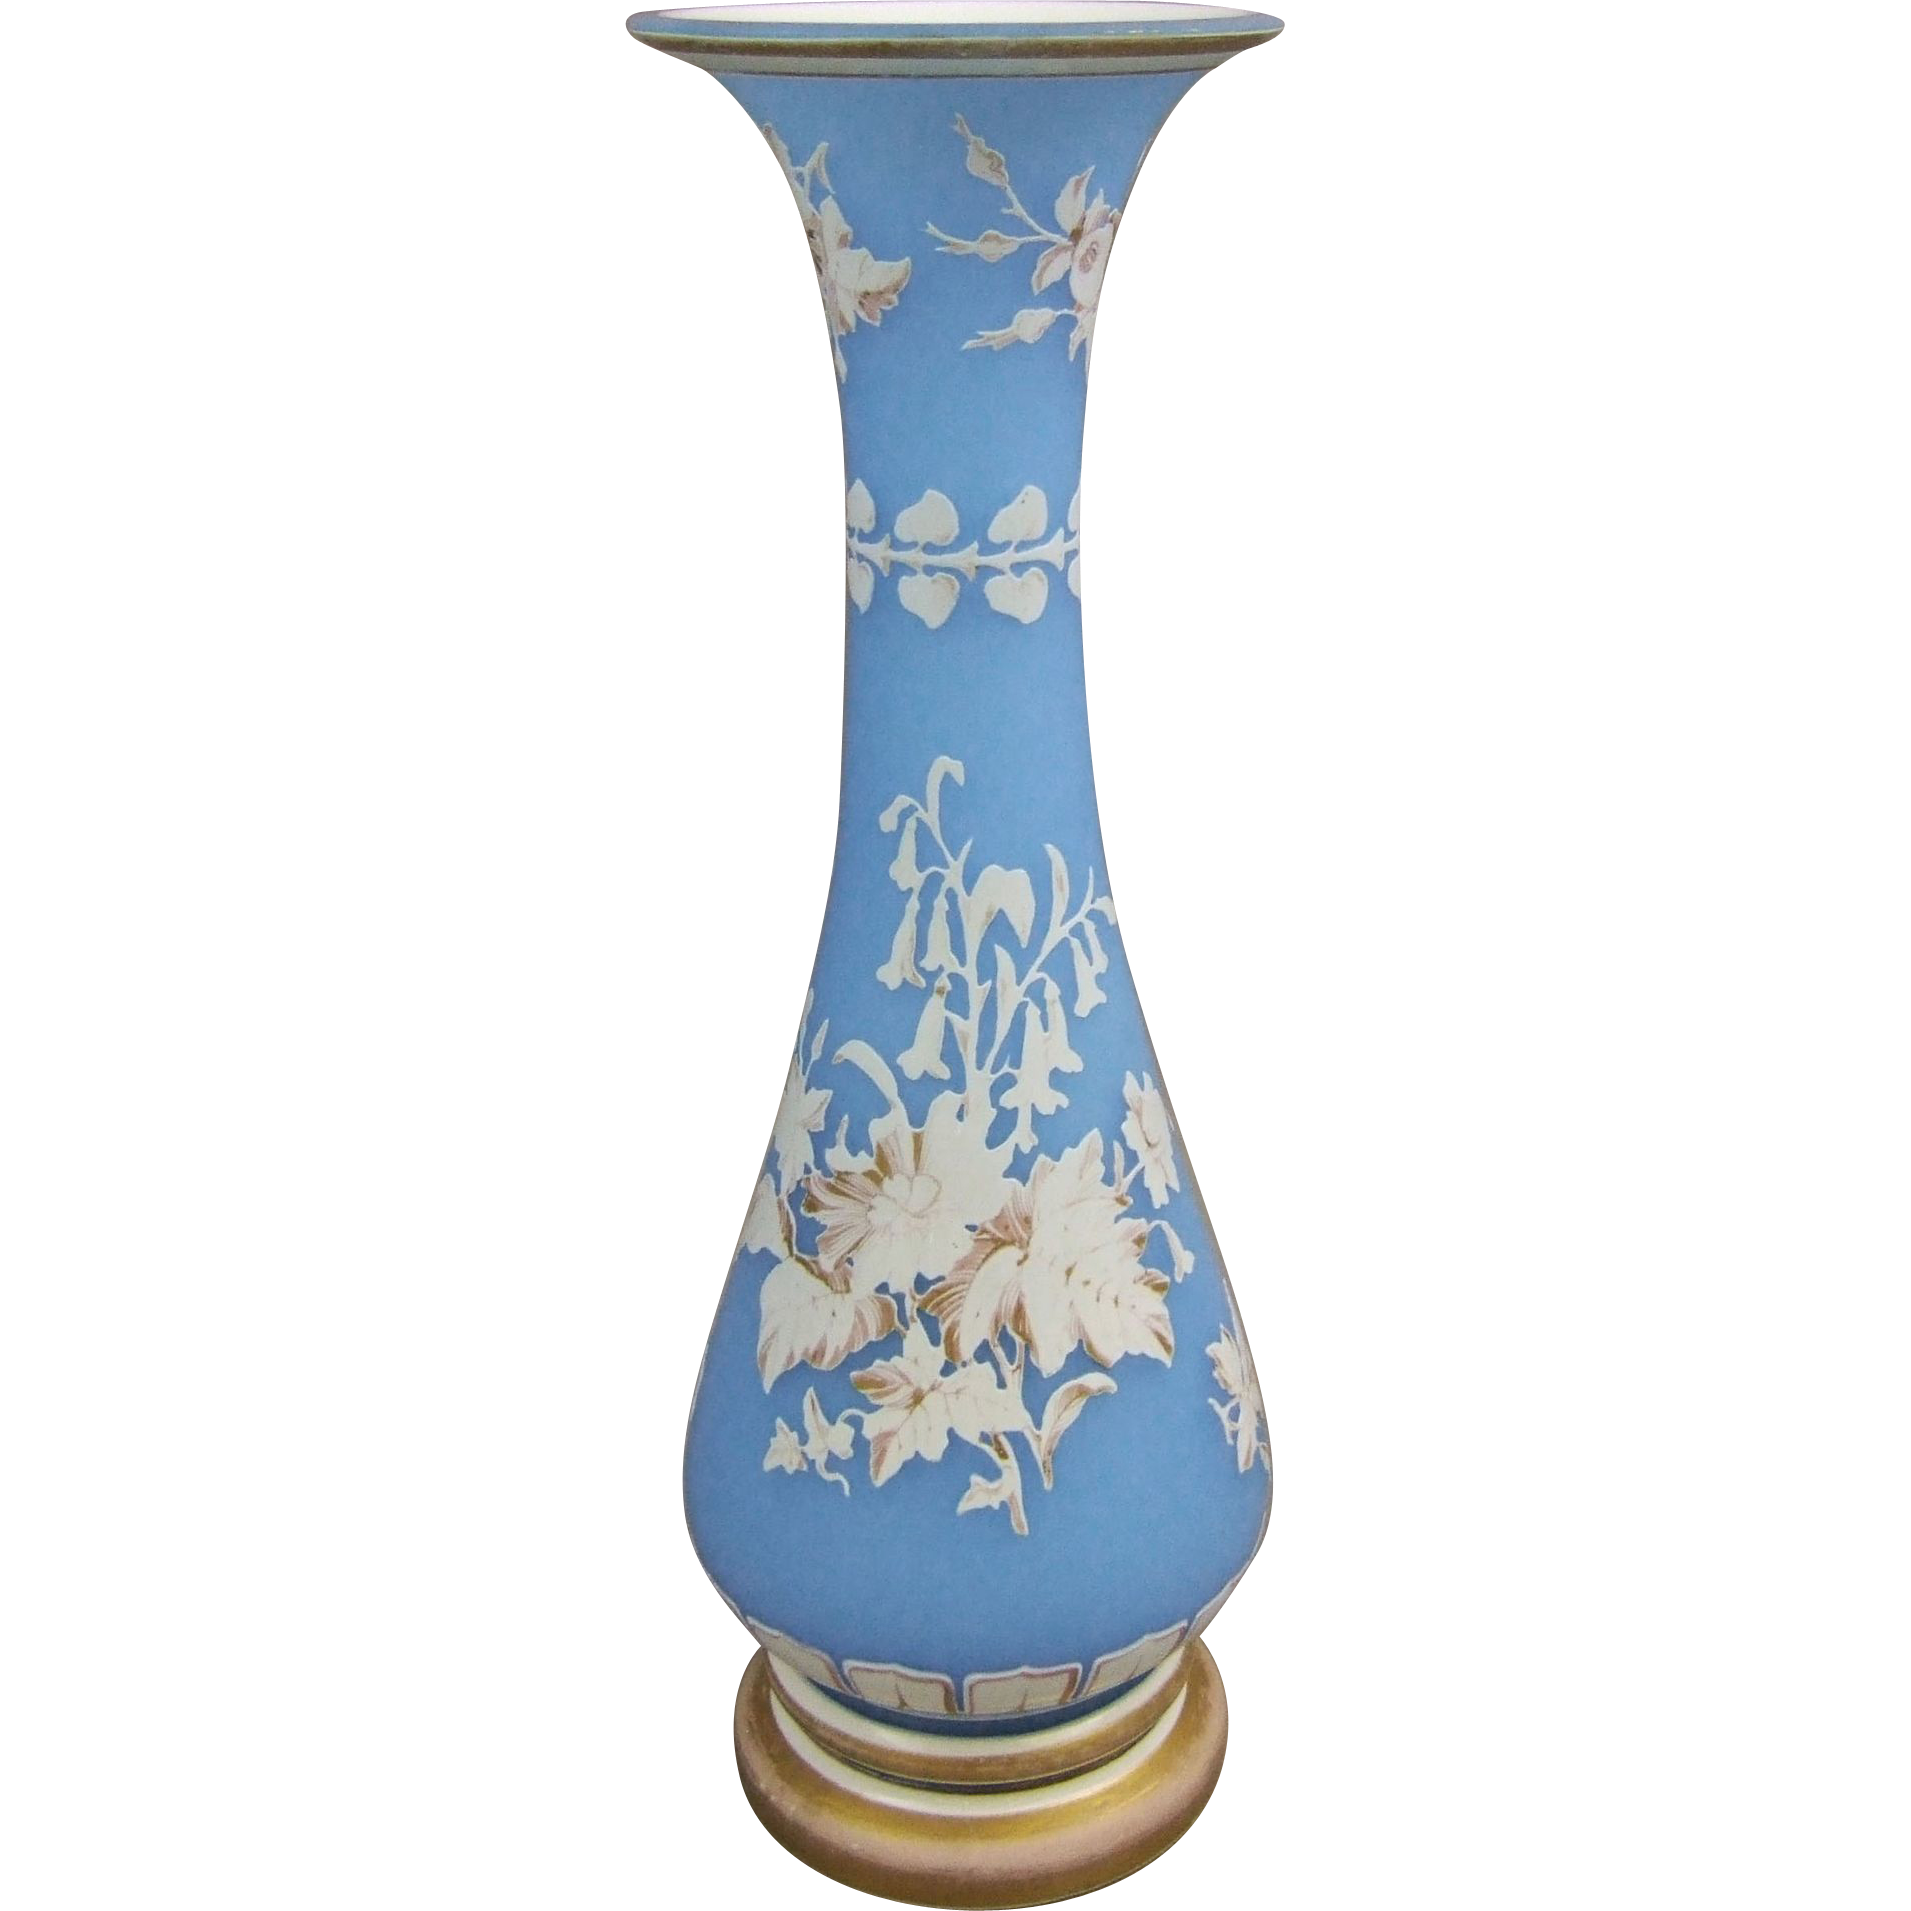 Antique Blue Opaline Overlay Glass Vase with Cameo Cut Floral Bouquets